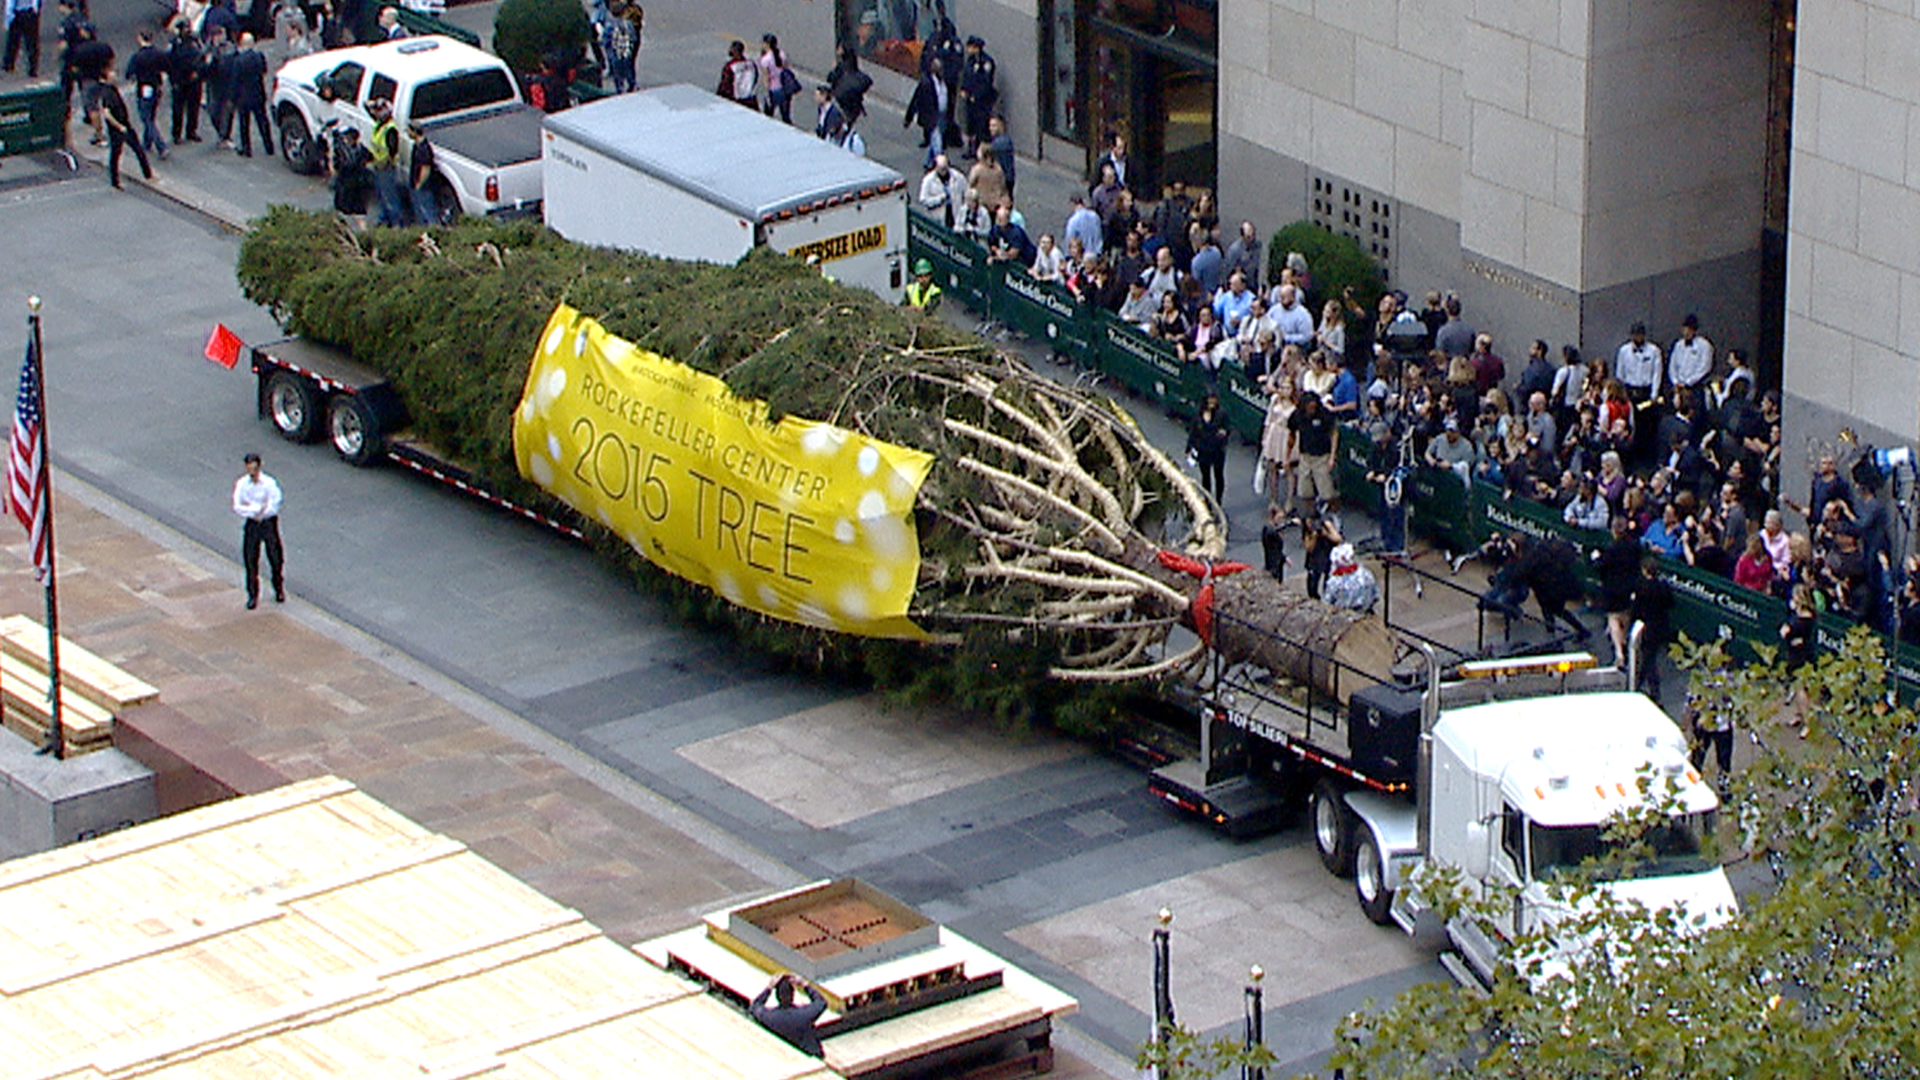 Rockefeller Center Christmas Tree Arrives On The Plaza